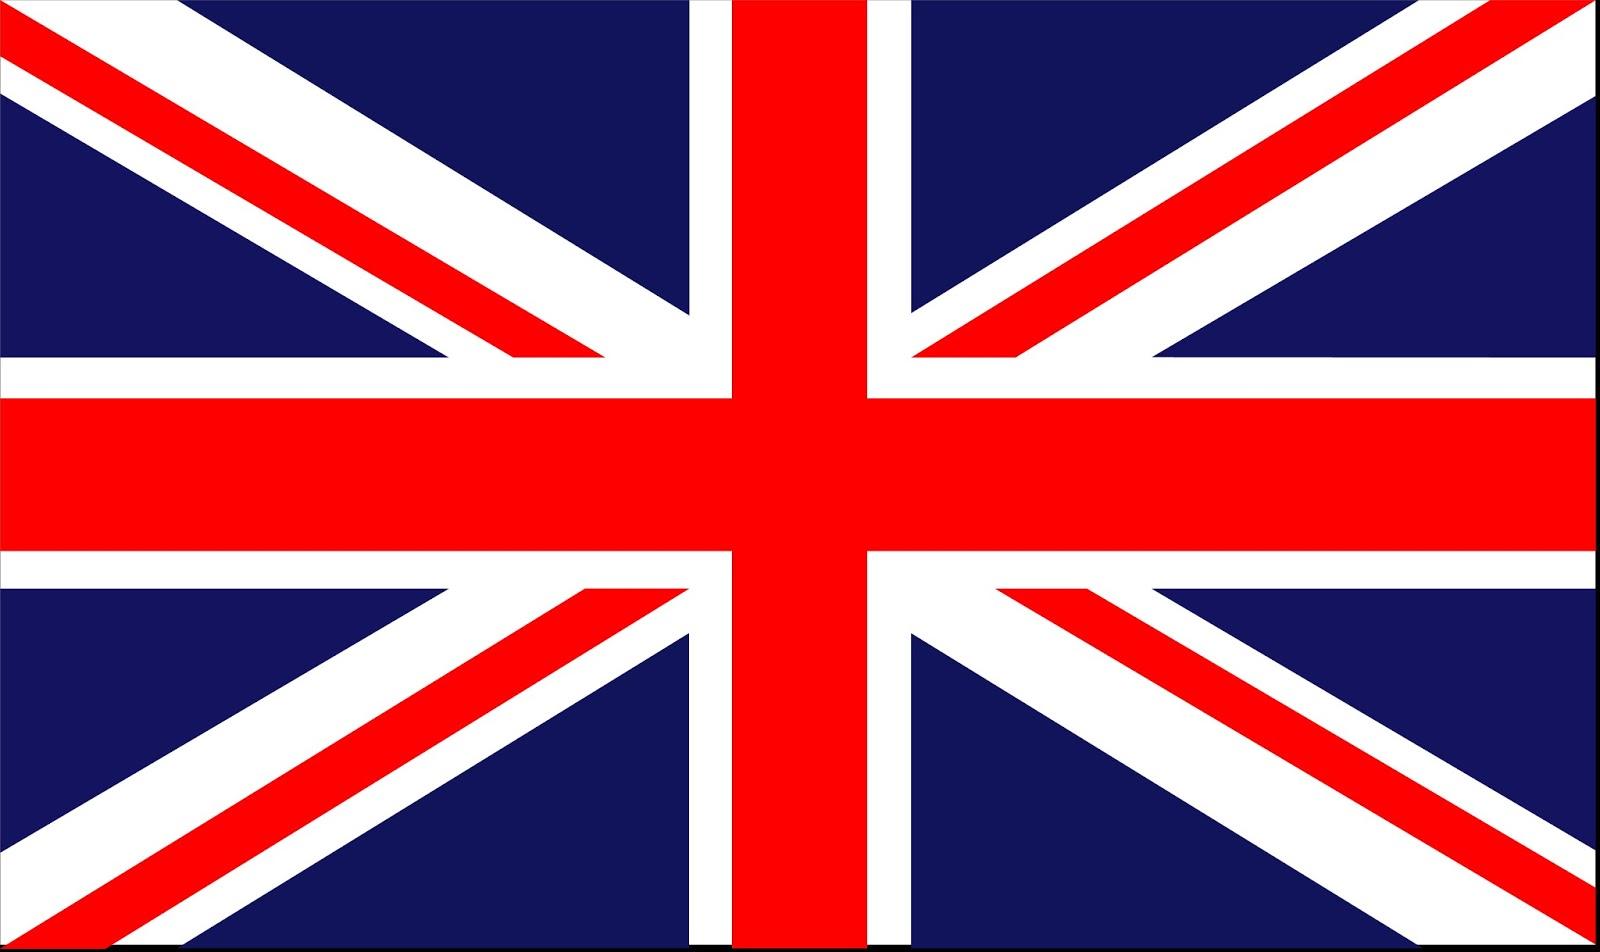 HD Wallpapers Fine: britain flag HQ wallpapers free download